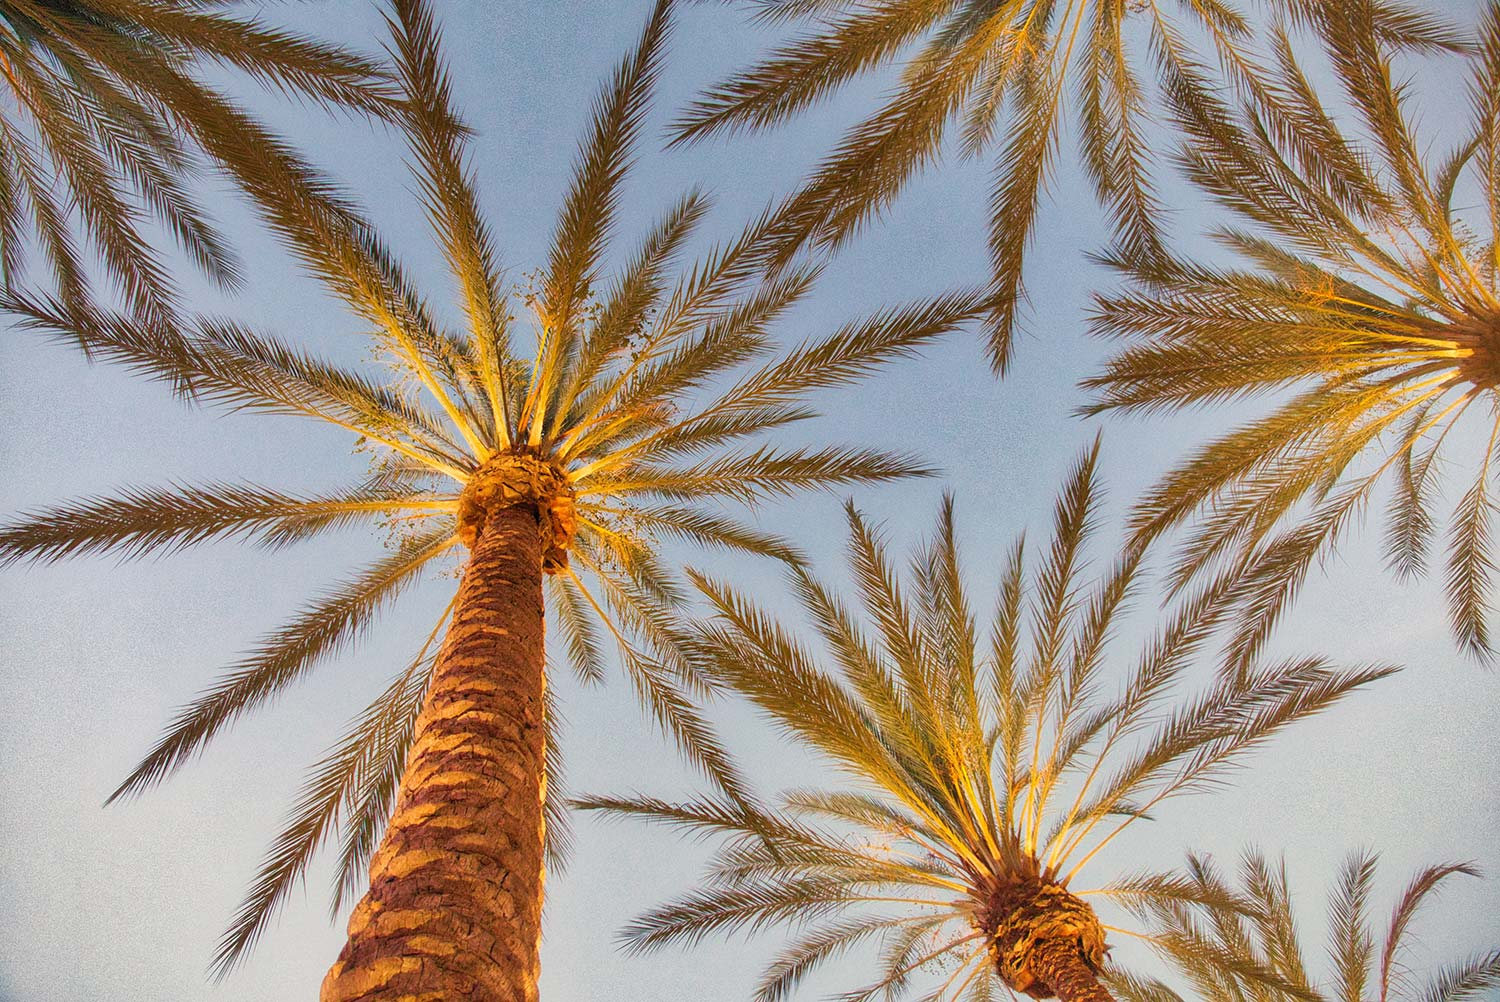 view from below a group of palm trees